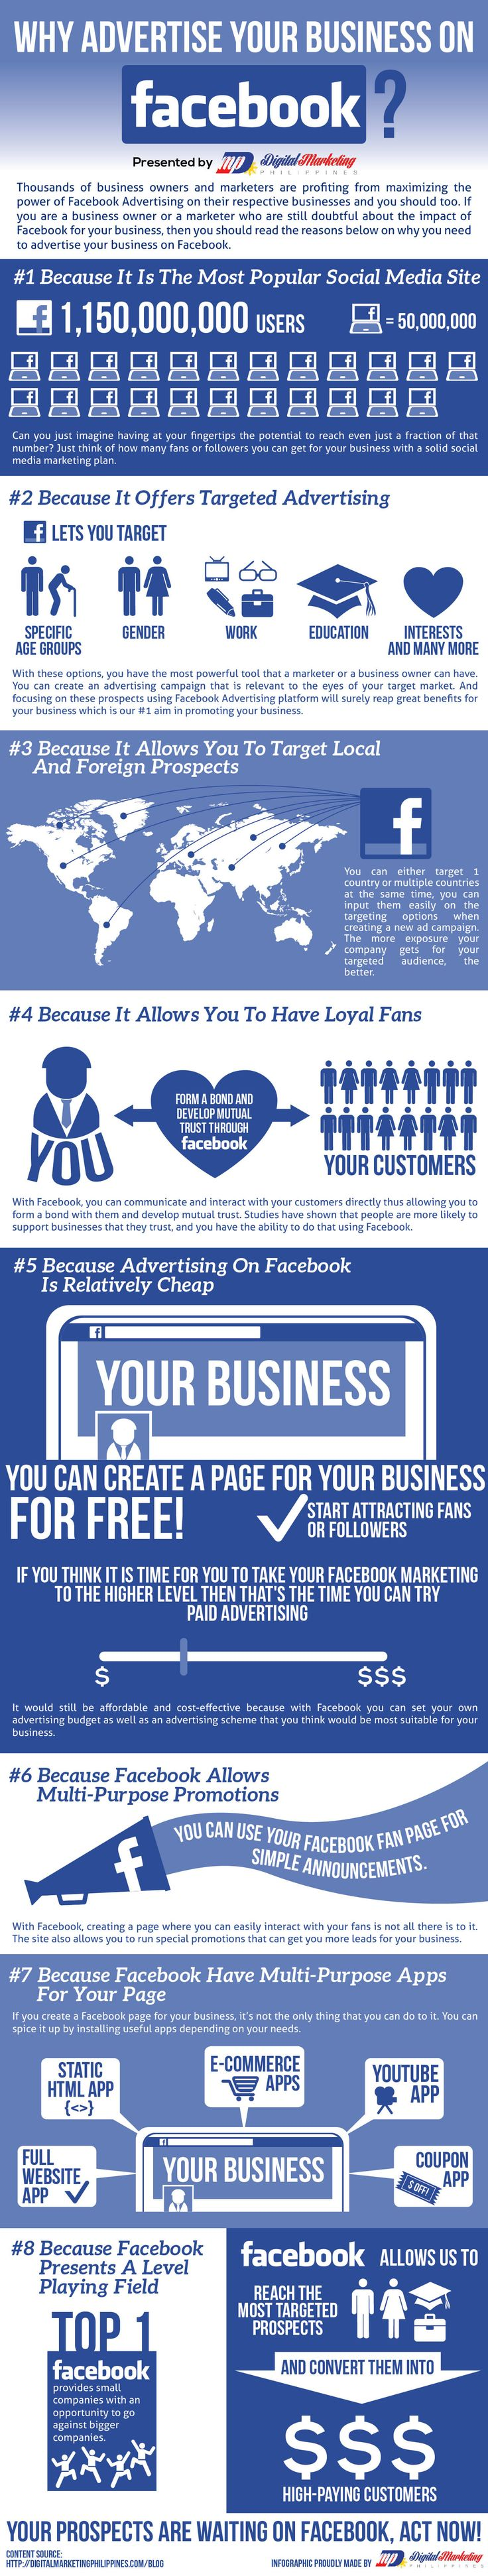 images about pure r ce business building tips on 1000 images about pure r ce business building tips passive income facebook and a business